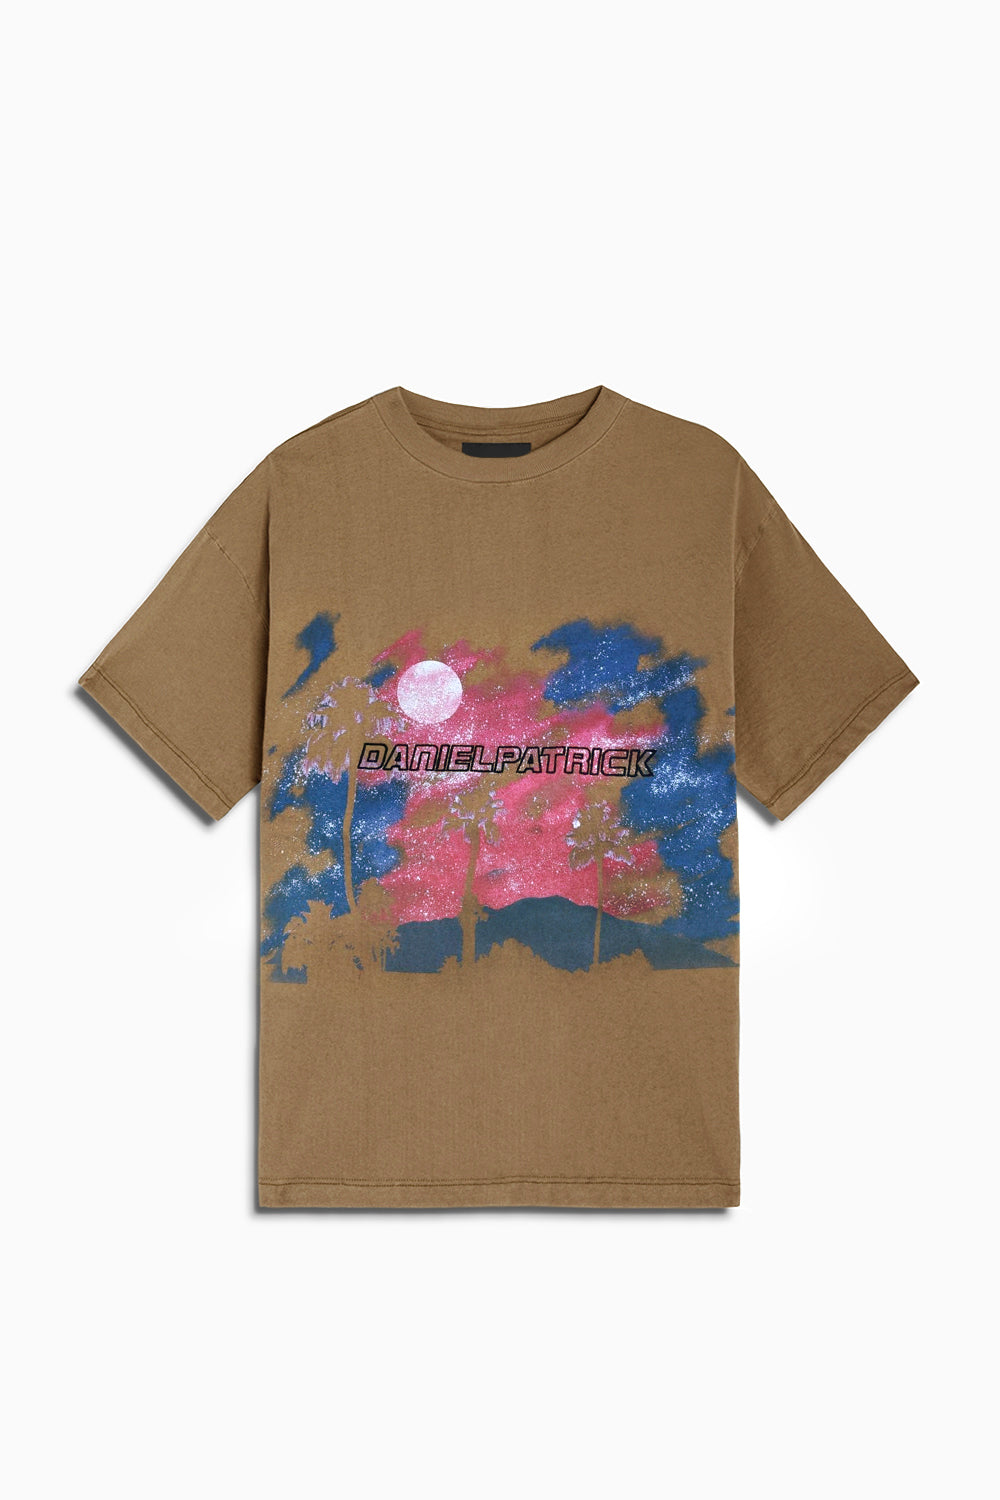 sunset tee / mojave + pink + blue